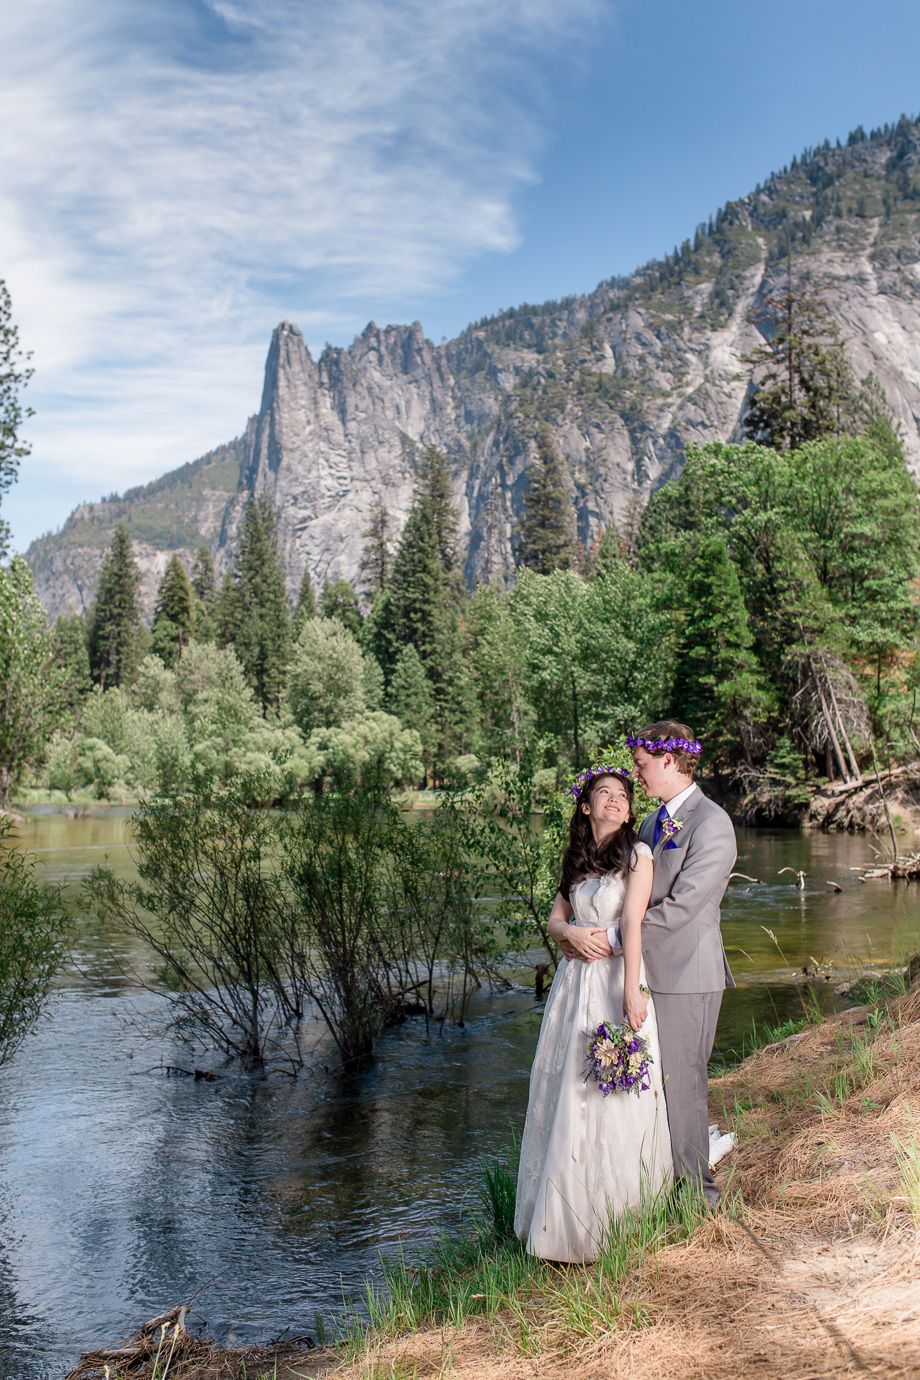 wedding at Merced River in Yosemite looking up at Cathedral Point